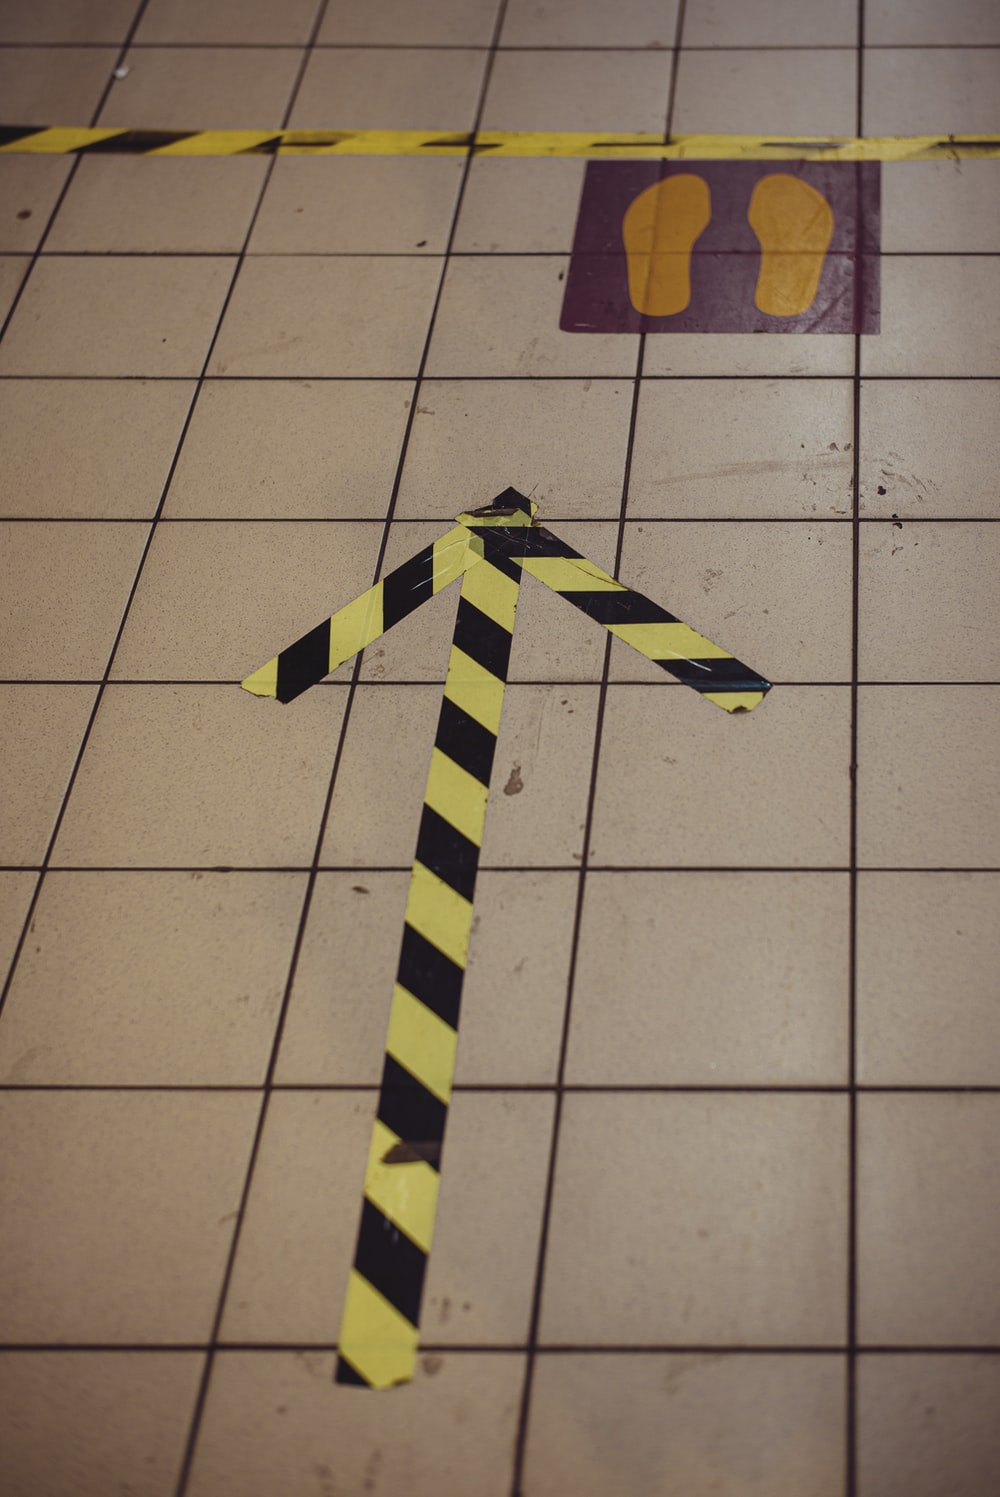 yellow and black cross on white floor tiles